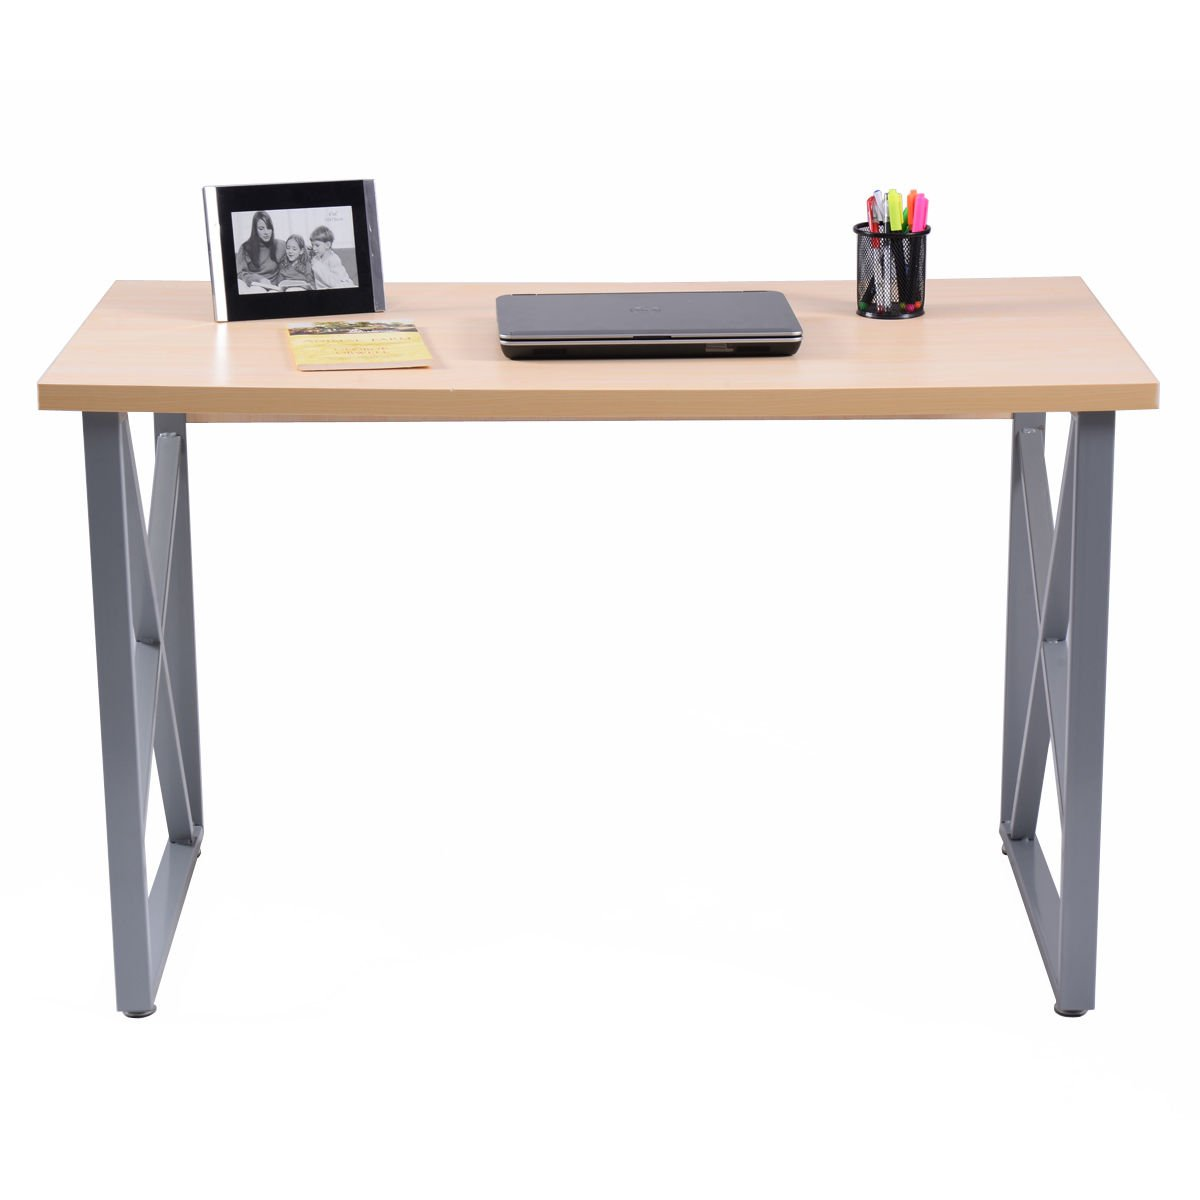 office computer desk. Home Office Computer Desk Furniture. Amazon.com: Chefjoy Pc Laptop Table